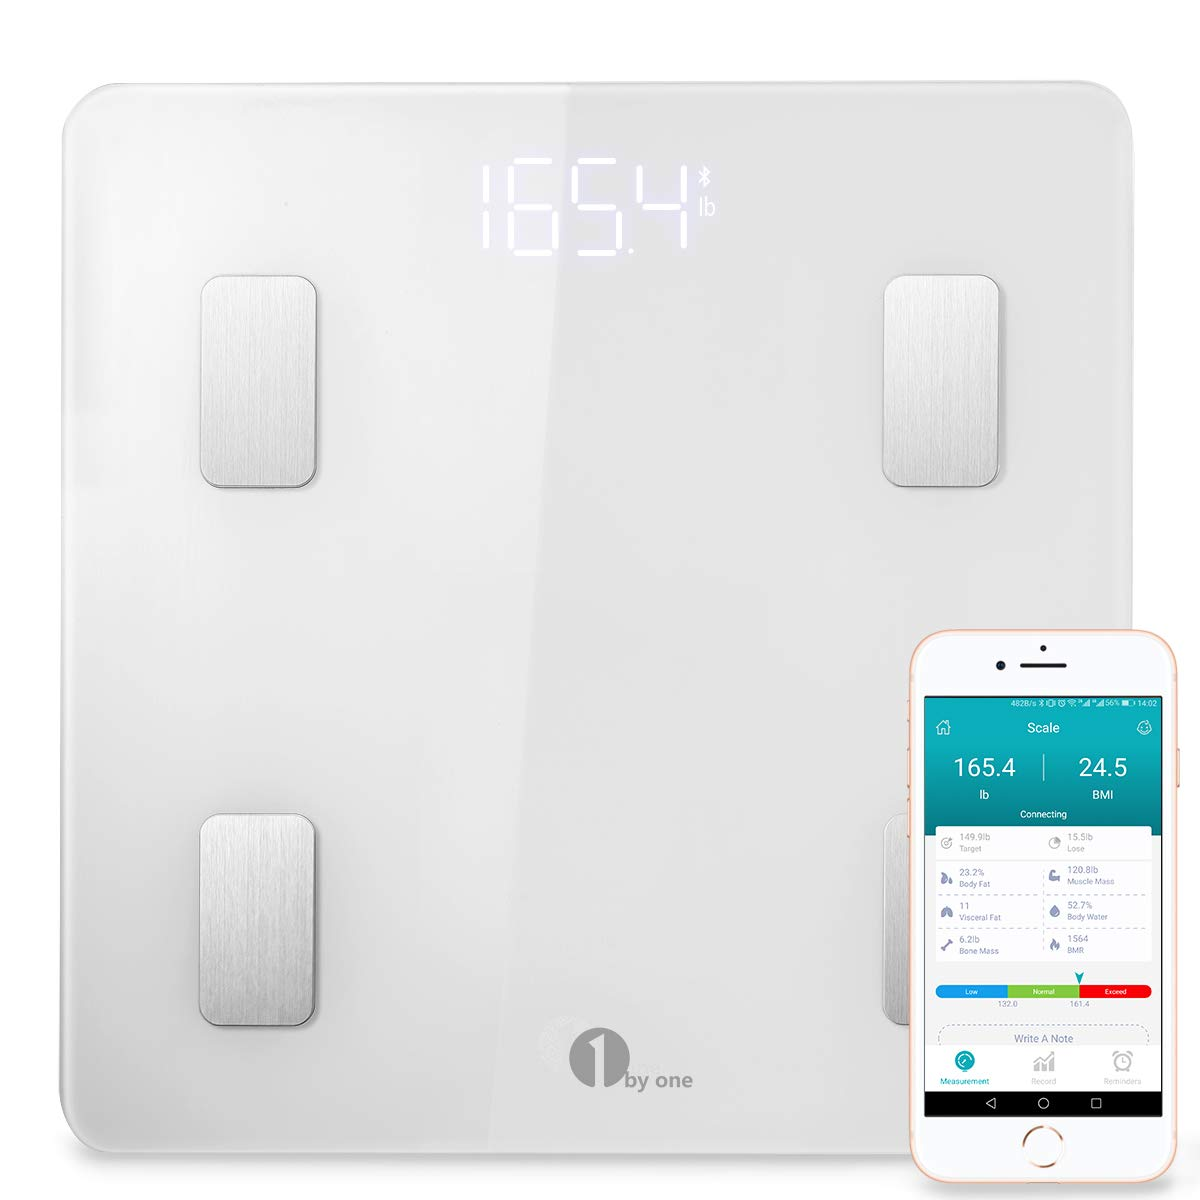 1 BY ONE Bluetooth Smart Body Fat Scale con iOS e Android App, Bianco, 35405 1byone Product Inc.